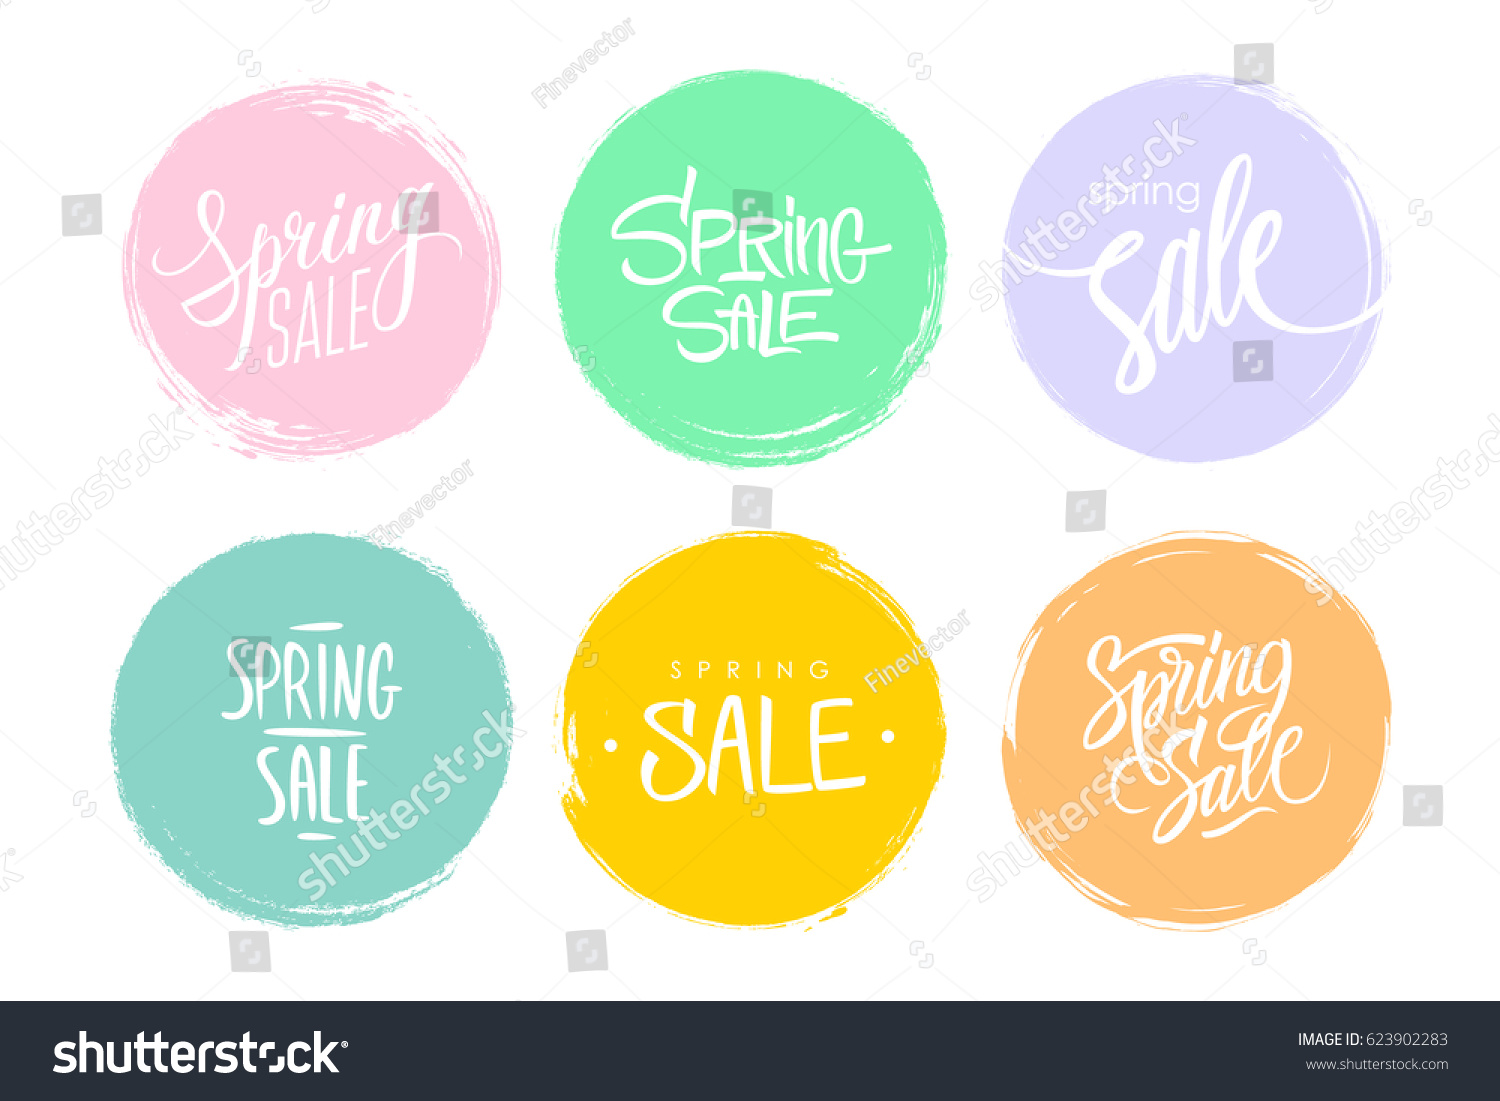 Spring Sale hand drawn lettering. Set of special offer signs with handwritten text design and circle brush stroke backgrounds for business, promotion and advertising. Vector illustration.